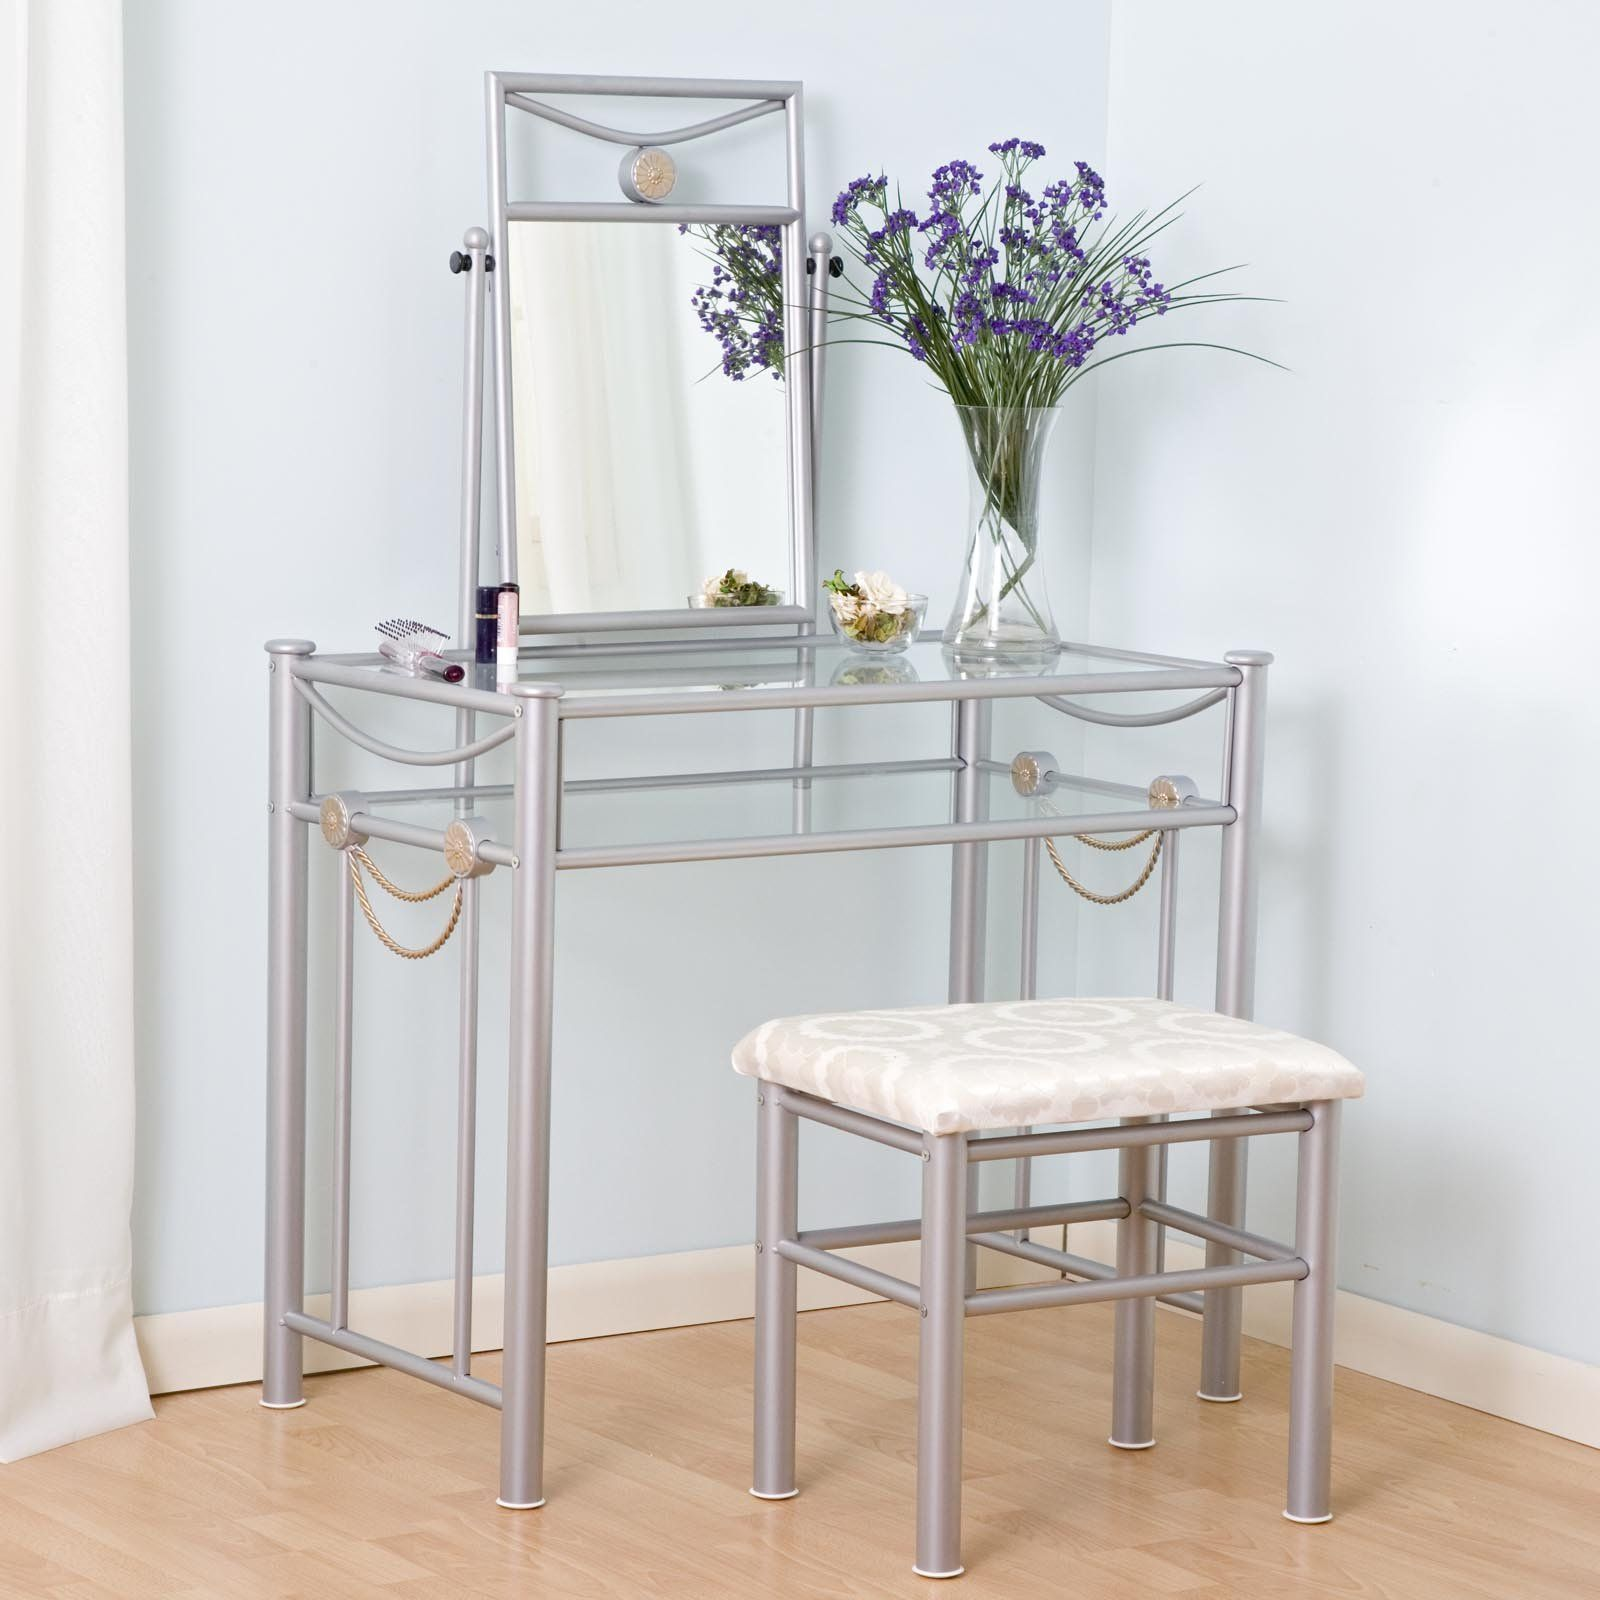 Awesome Mirrored Vanities For Bedrooms Of Robbinsville 7683